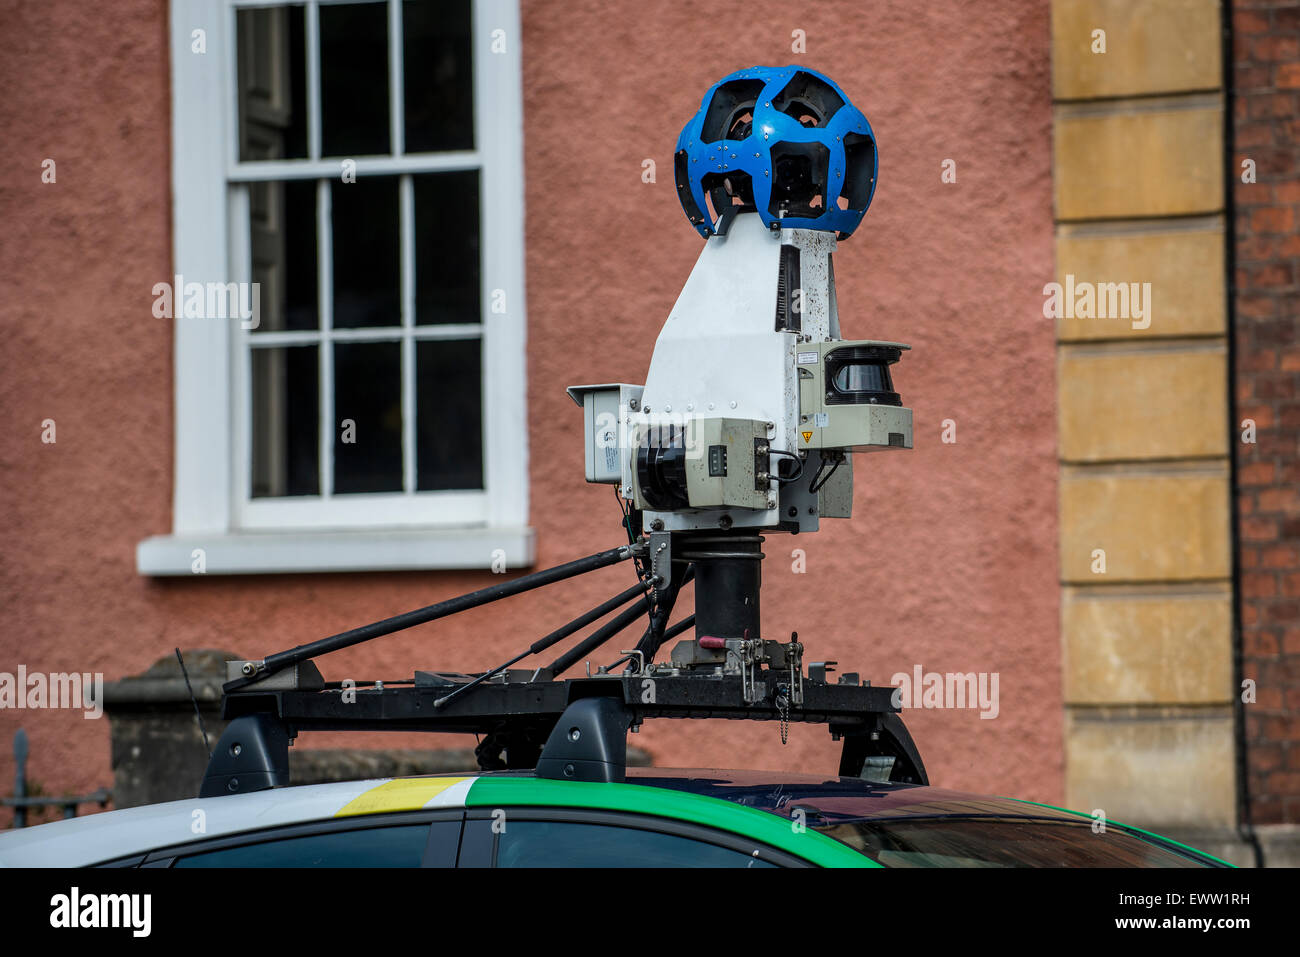 Cameras on top of a Google Street View car on the roads of Bristol in the United Kingdom. - Stock Image